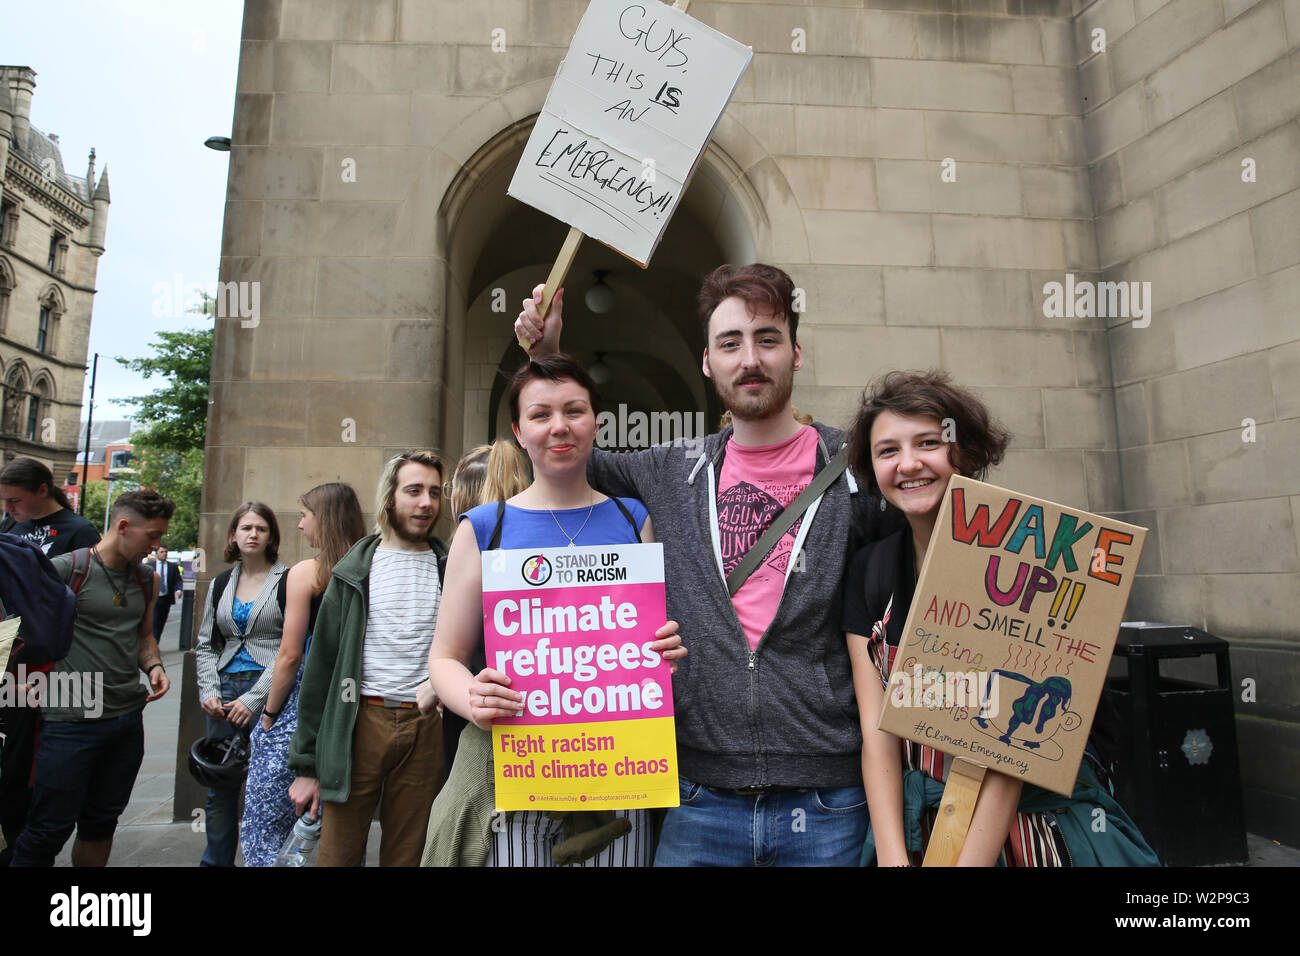 Manchester, UK, 10th July, 2019. Manchester Council declares a climate emergency.  The public gallery was full of climate campaigners, Manchester Town Hall Extension, Manchester, UK. Credit: Barbara Cook/Alamy Live News - Stock Image